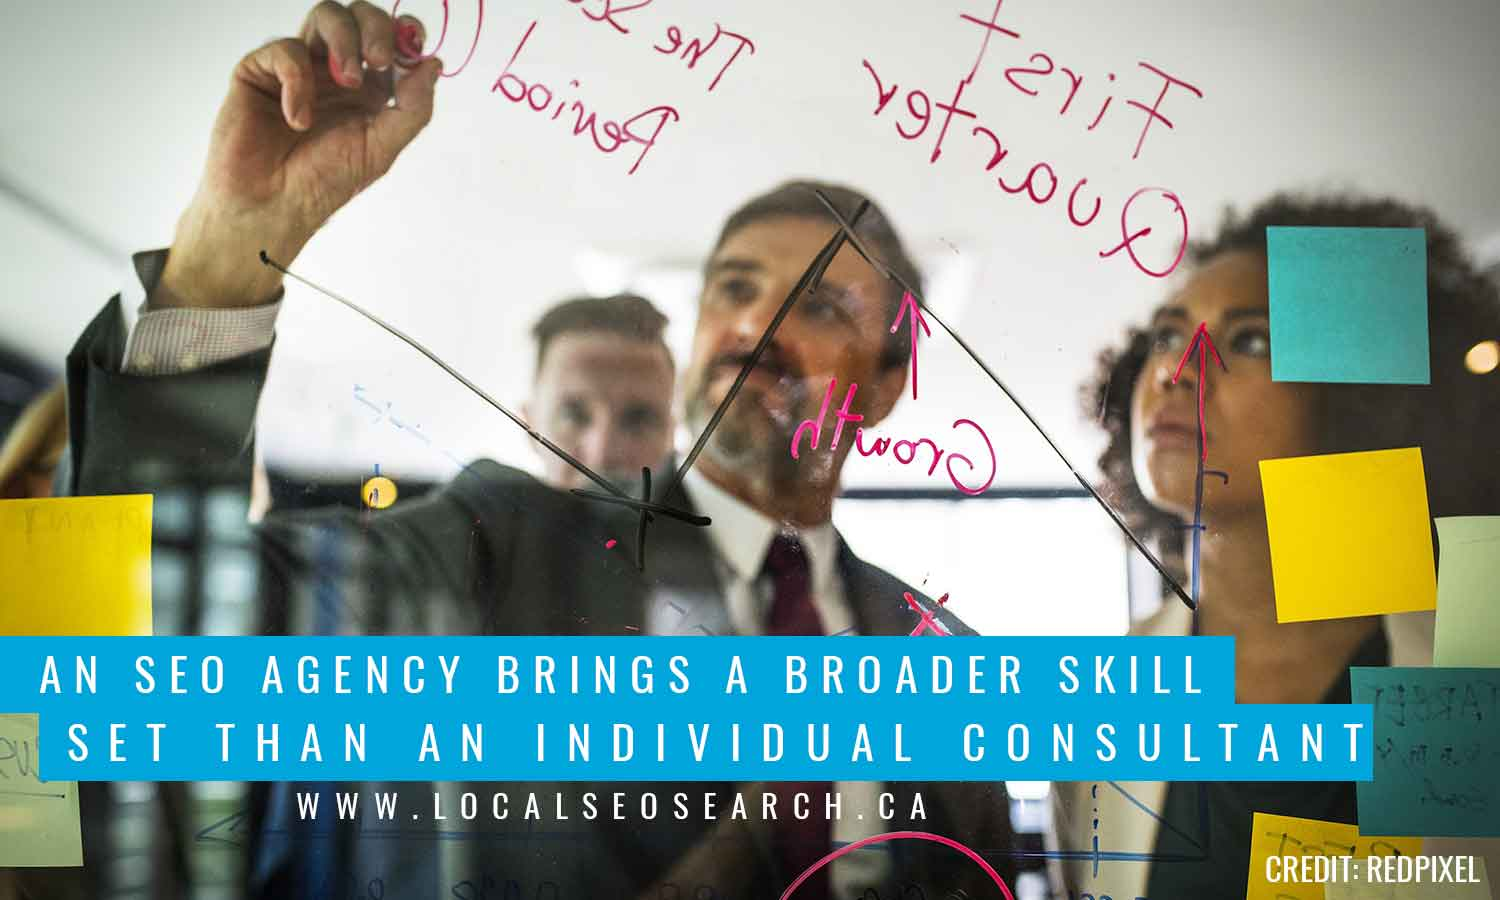 An SEO agency brings a broader skill set than an individual consultant